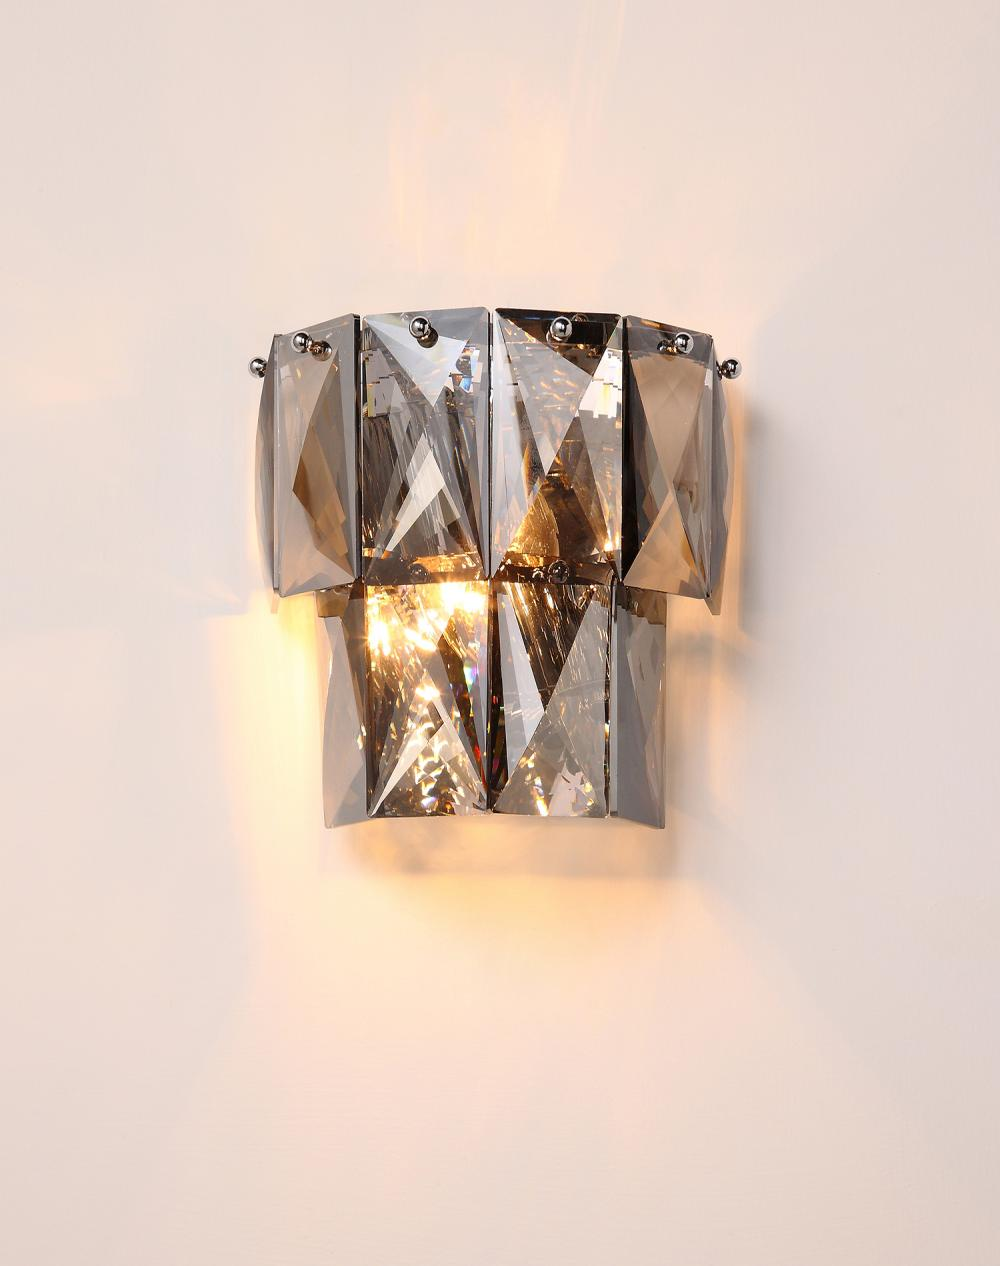 Crystal Wall Lamp fixtures